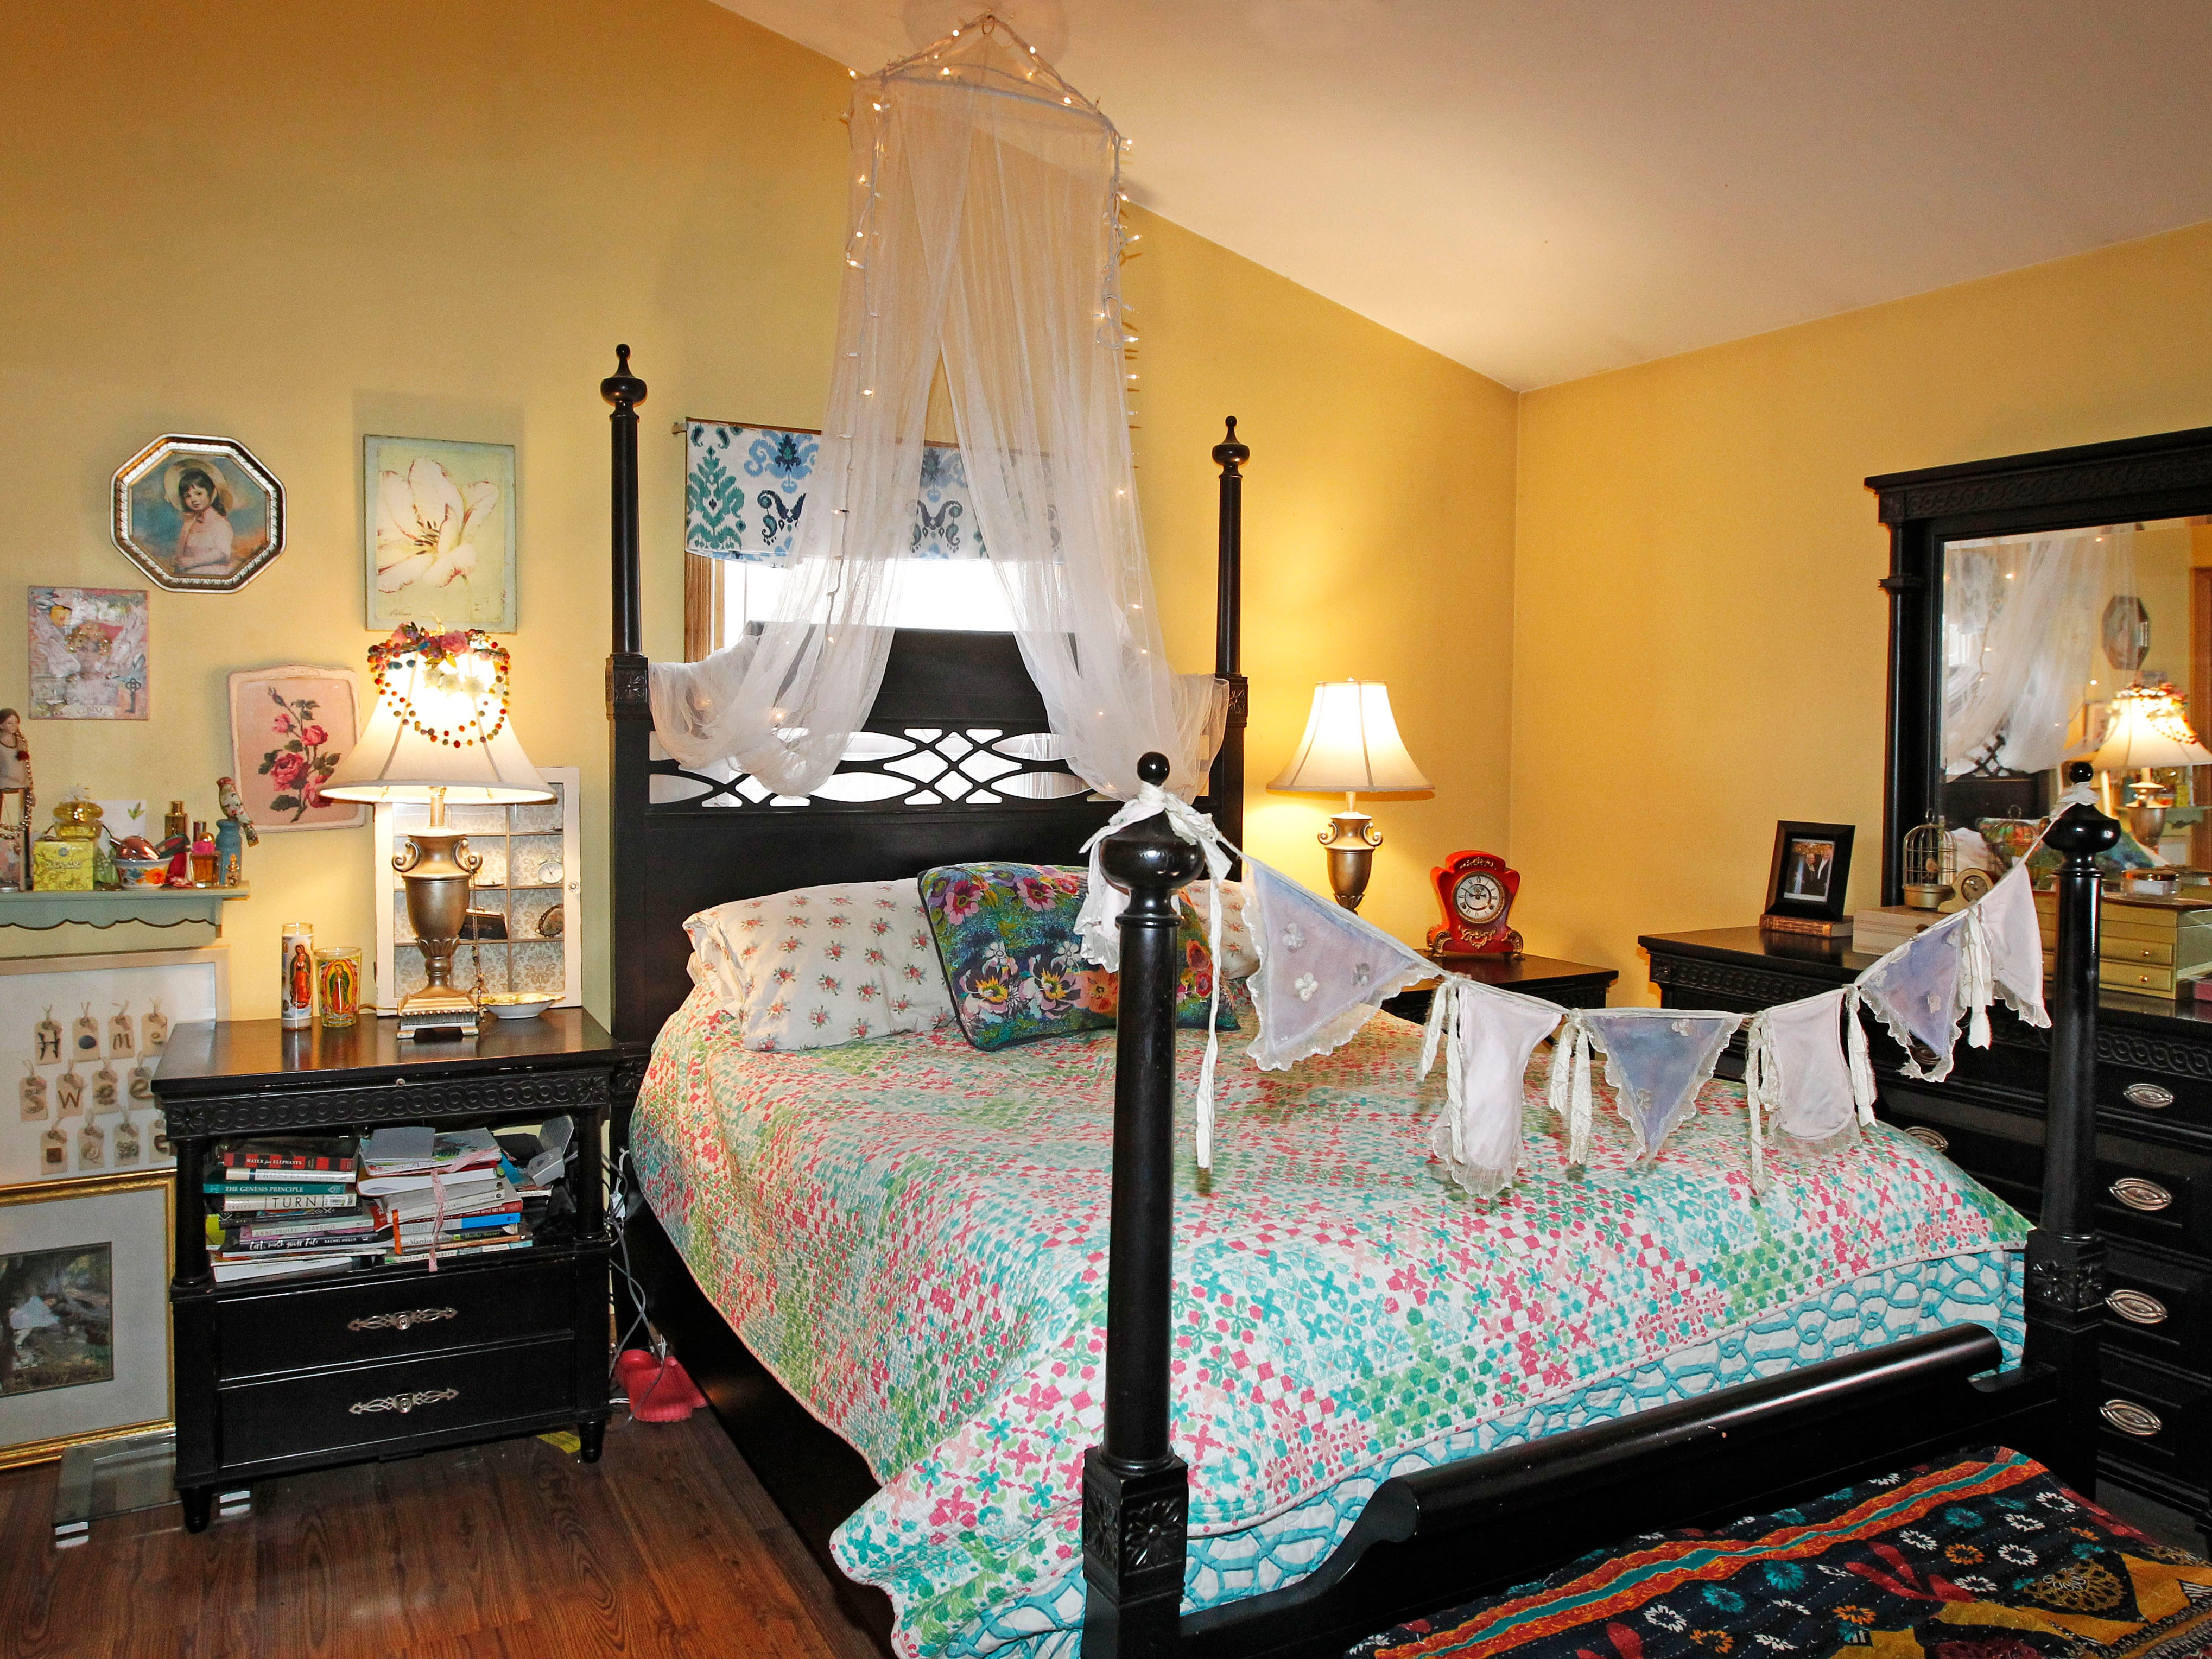 The master bedroom on the home's second floor is decorated with brightly colored artwork.